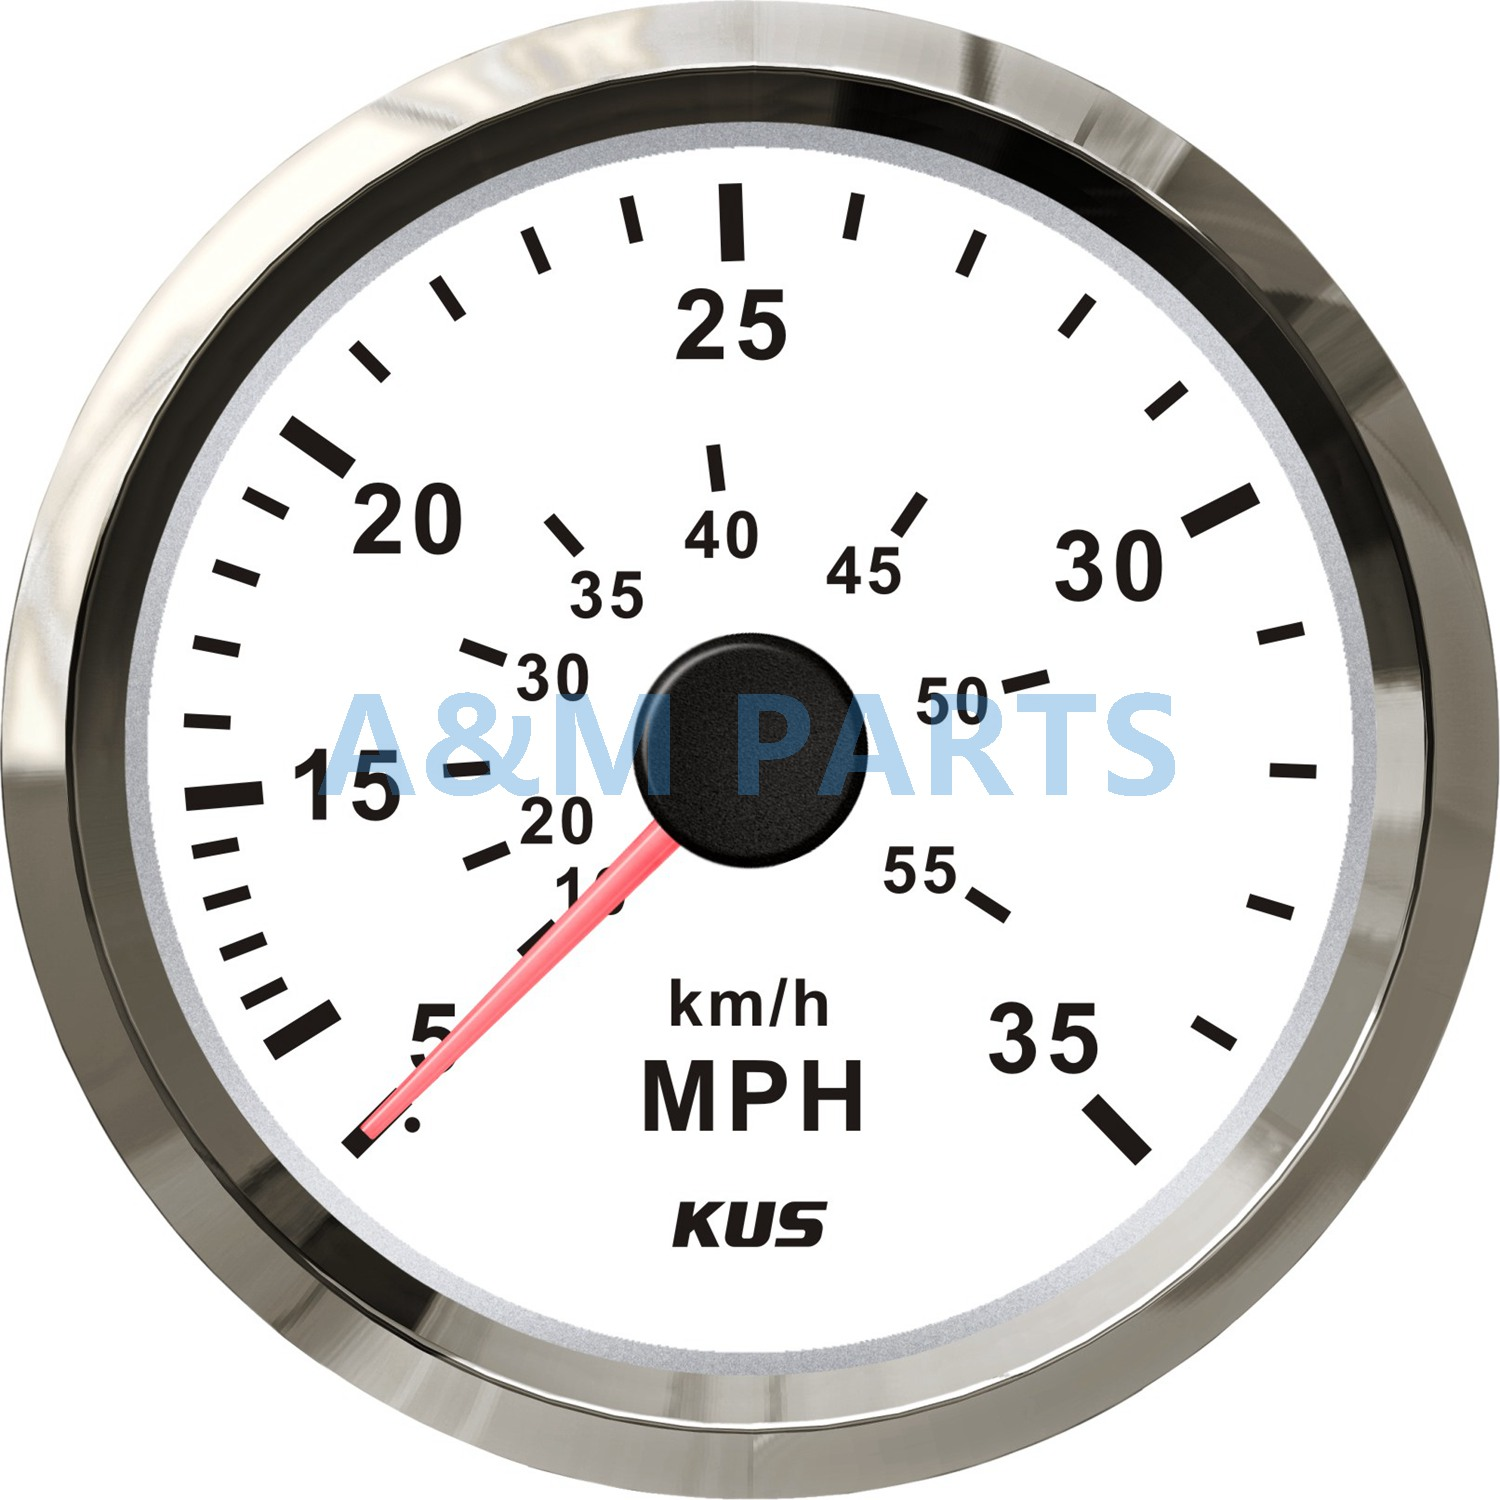 KUS Boat Speedometer Gauge Marine Speed Meter White Face 12V/24V 0-35MPH 85mm датчик kus 12v 24v